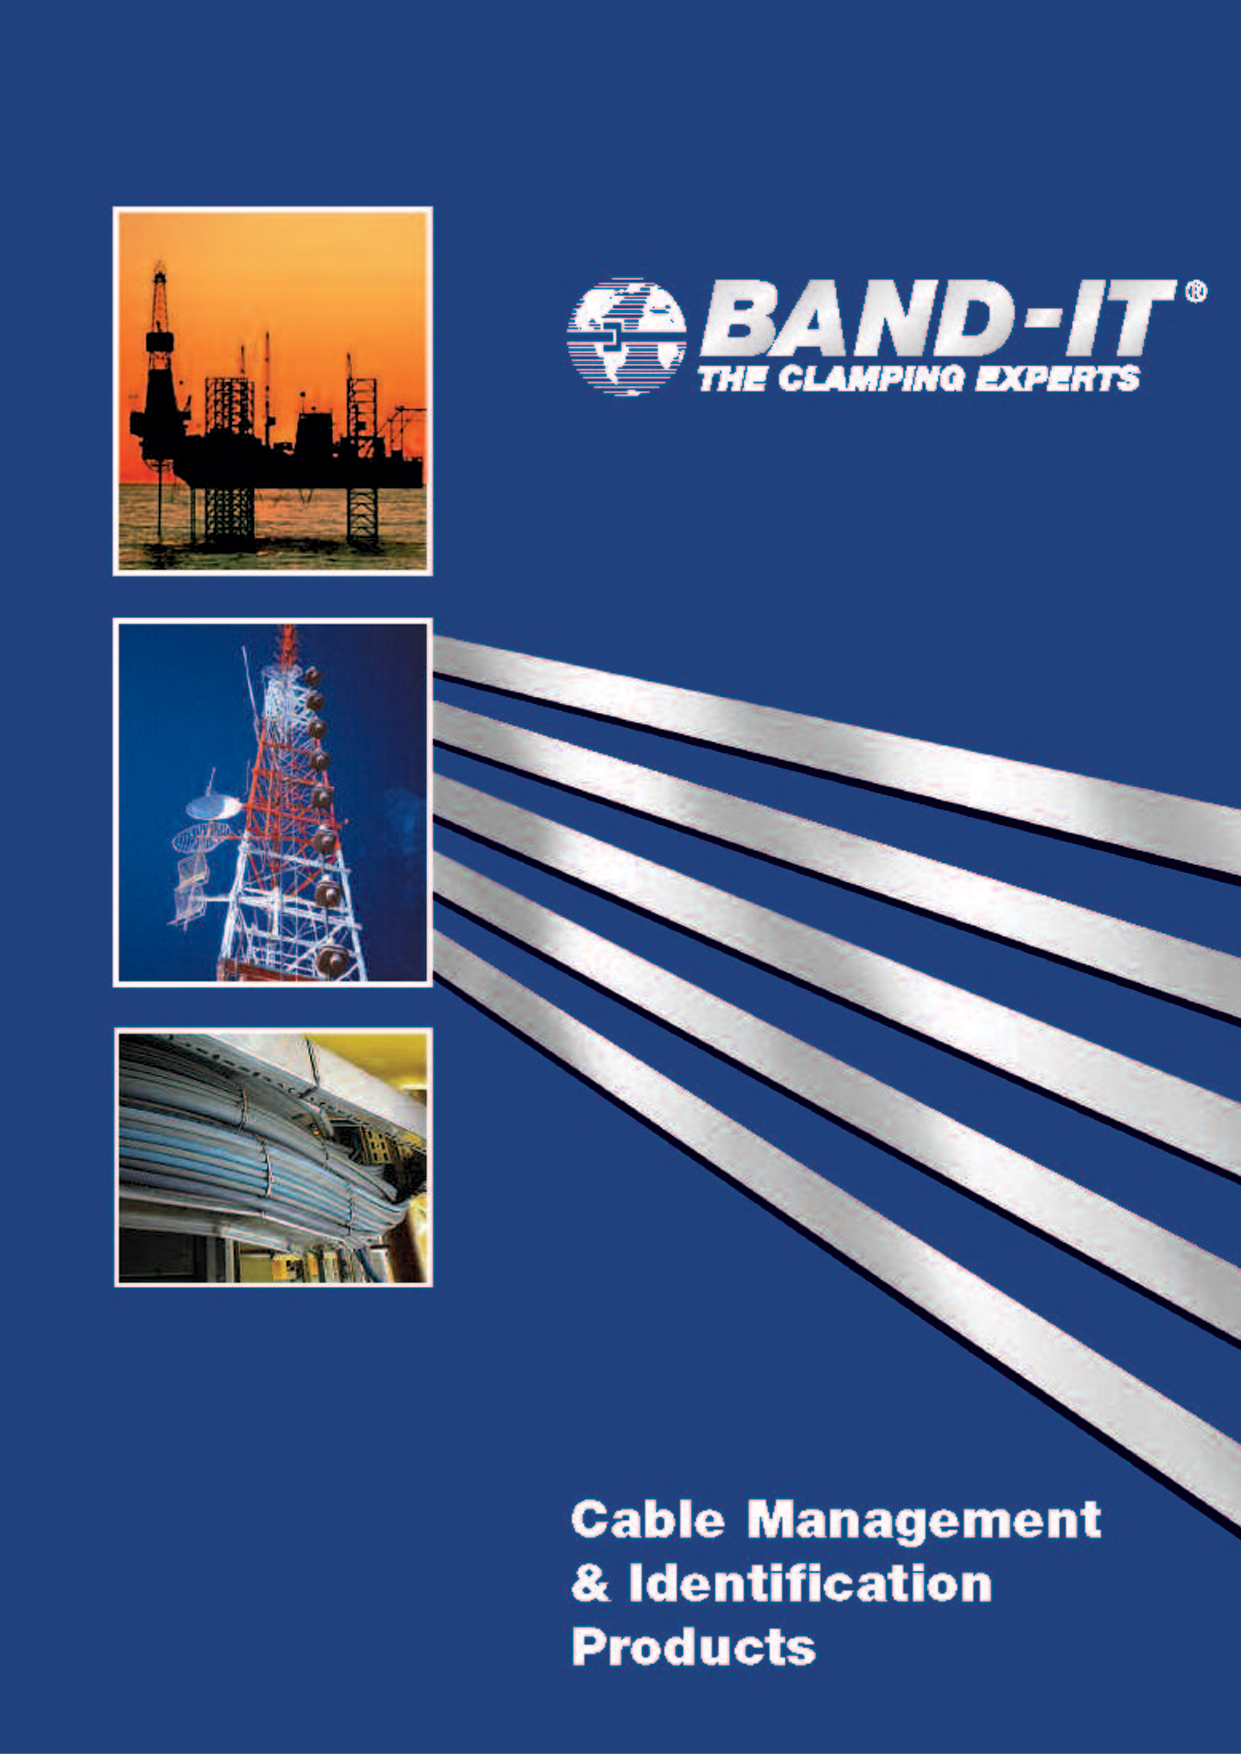 Cable Management and Identification Products